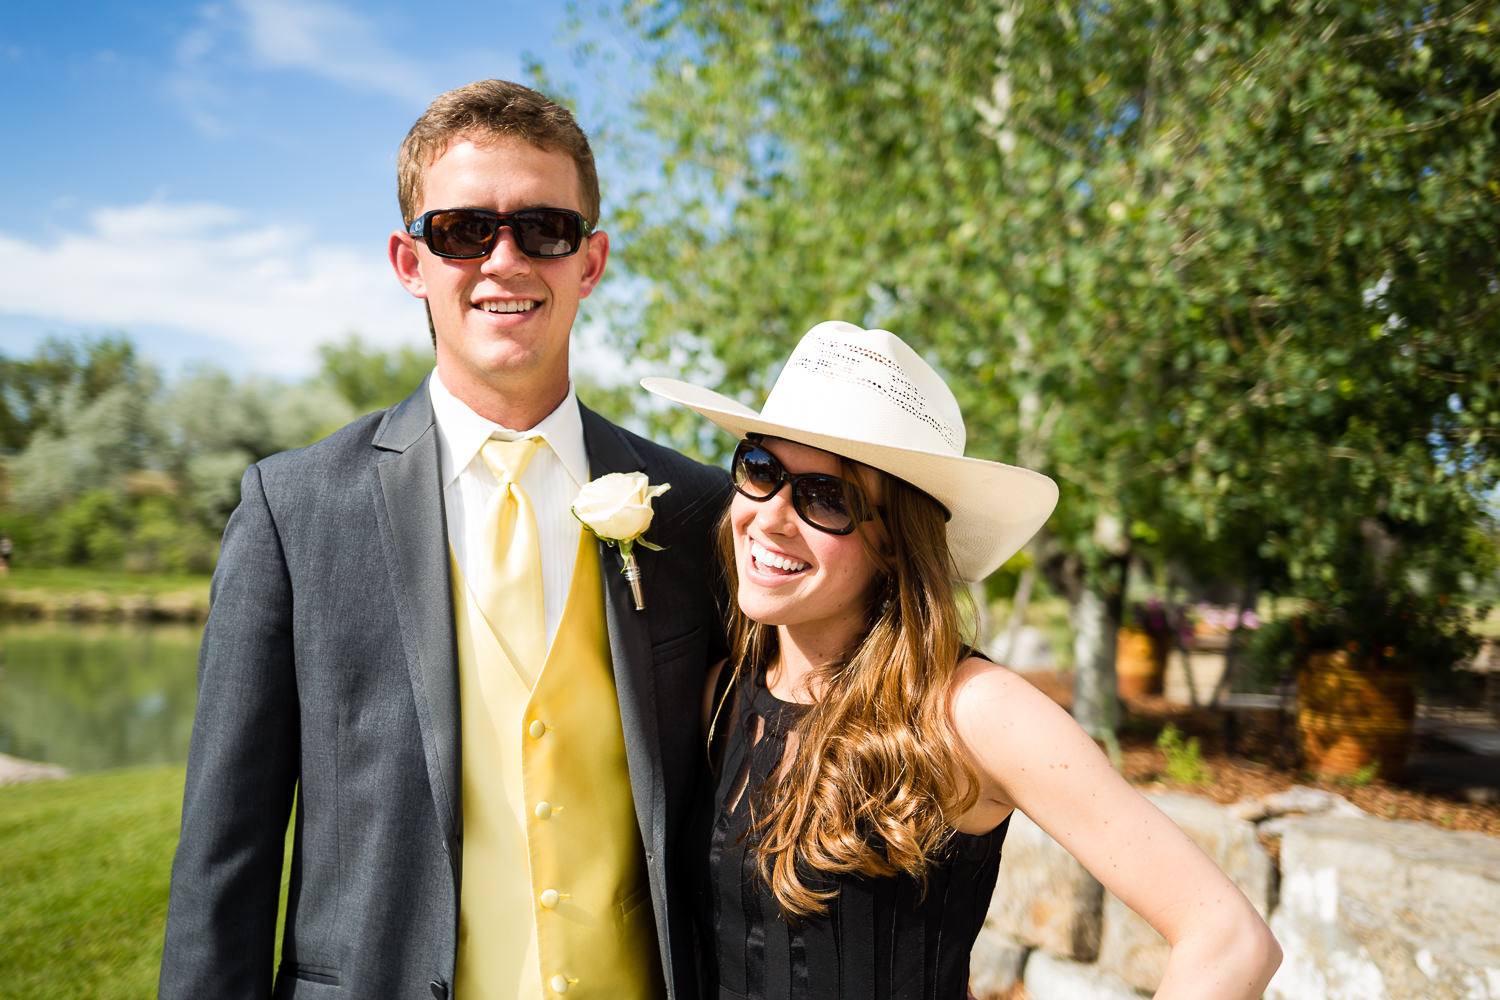 billings-montana-swift-river-ranch-wedding-candid-during-wedding-party-formals.jpg